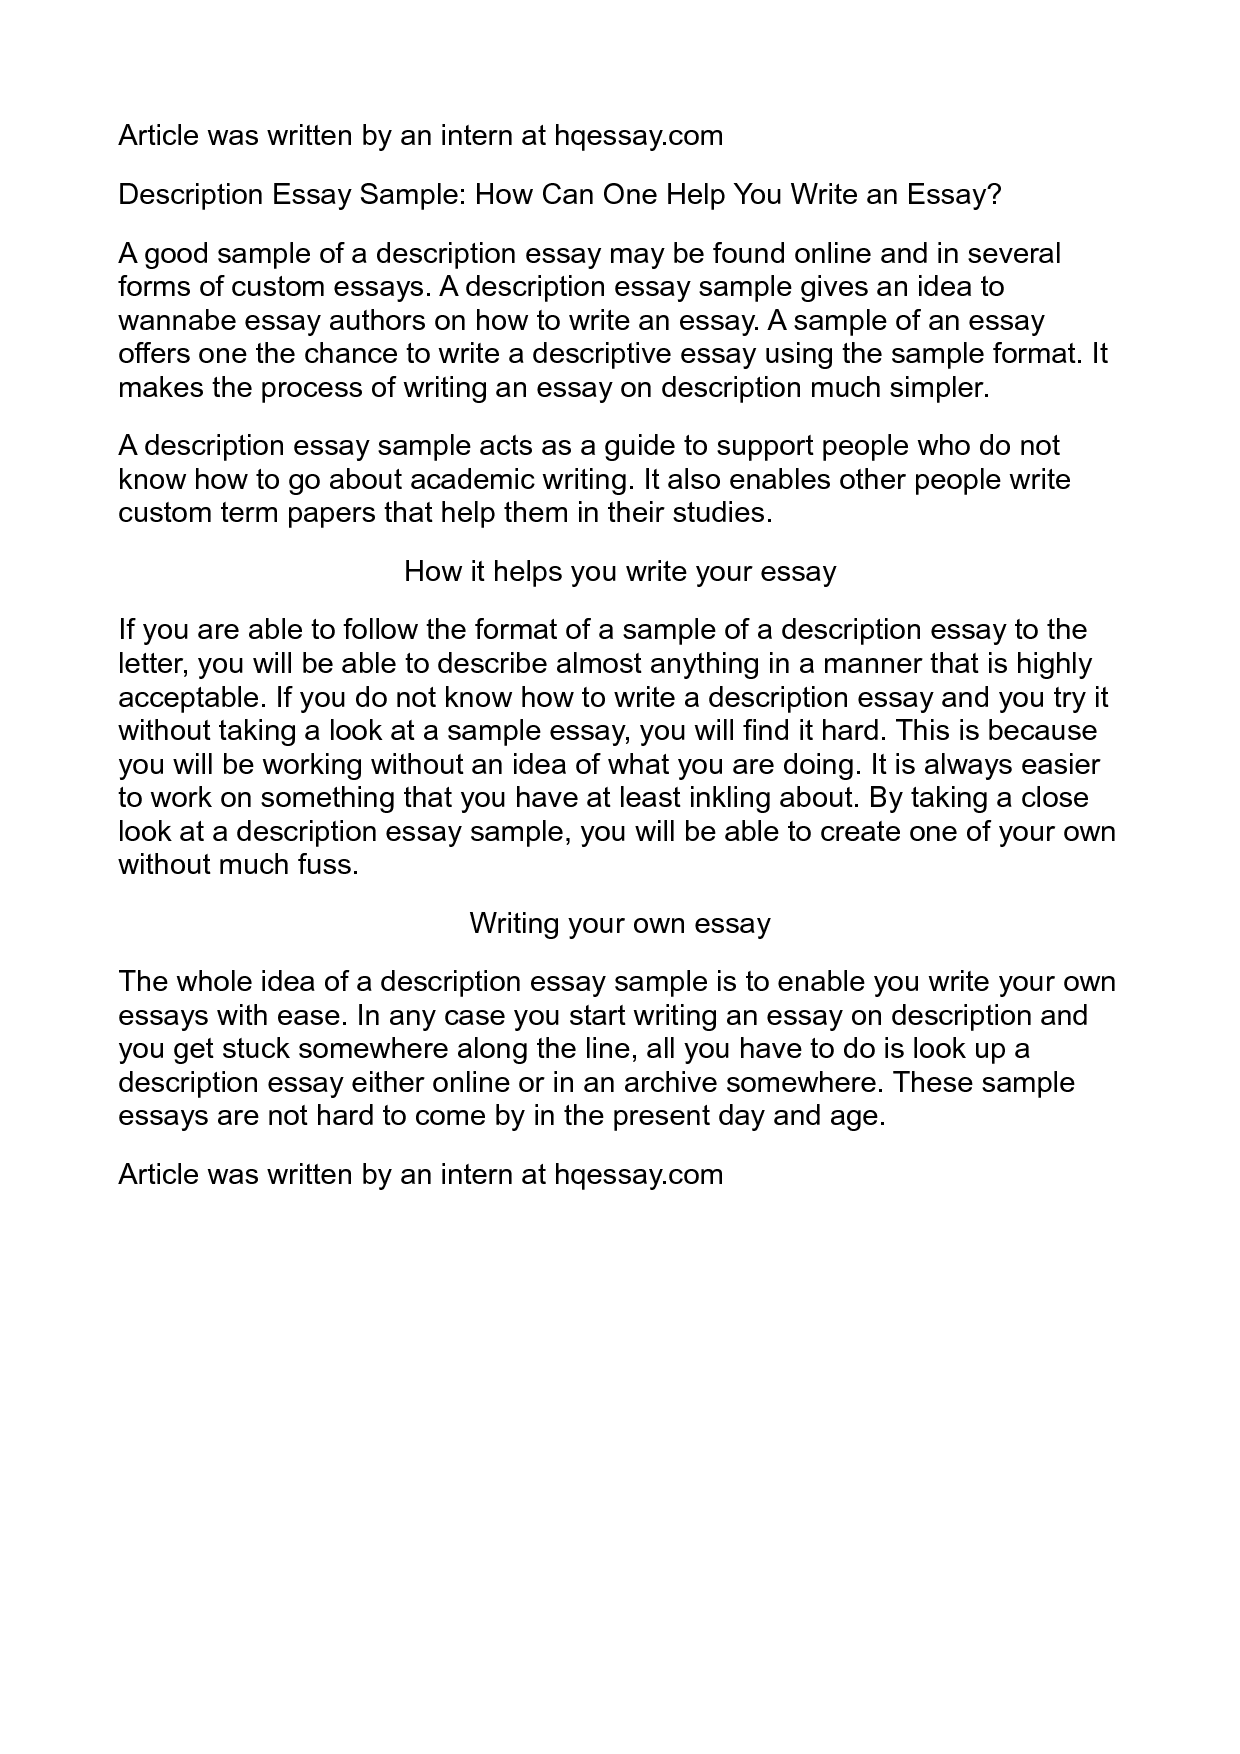 013 Faf9yl26hl Essay Example How To Write Magnificent Descriptive O Level A About Person Full